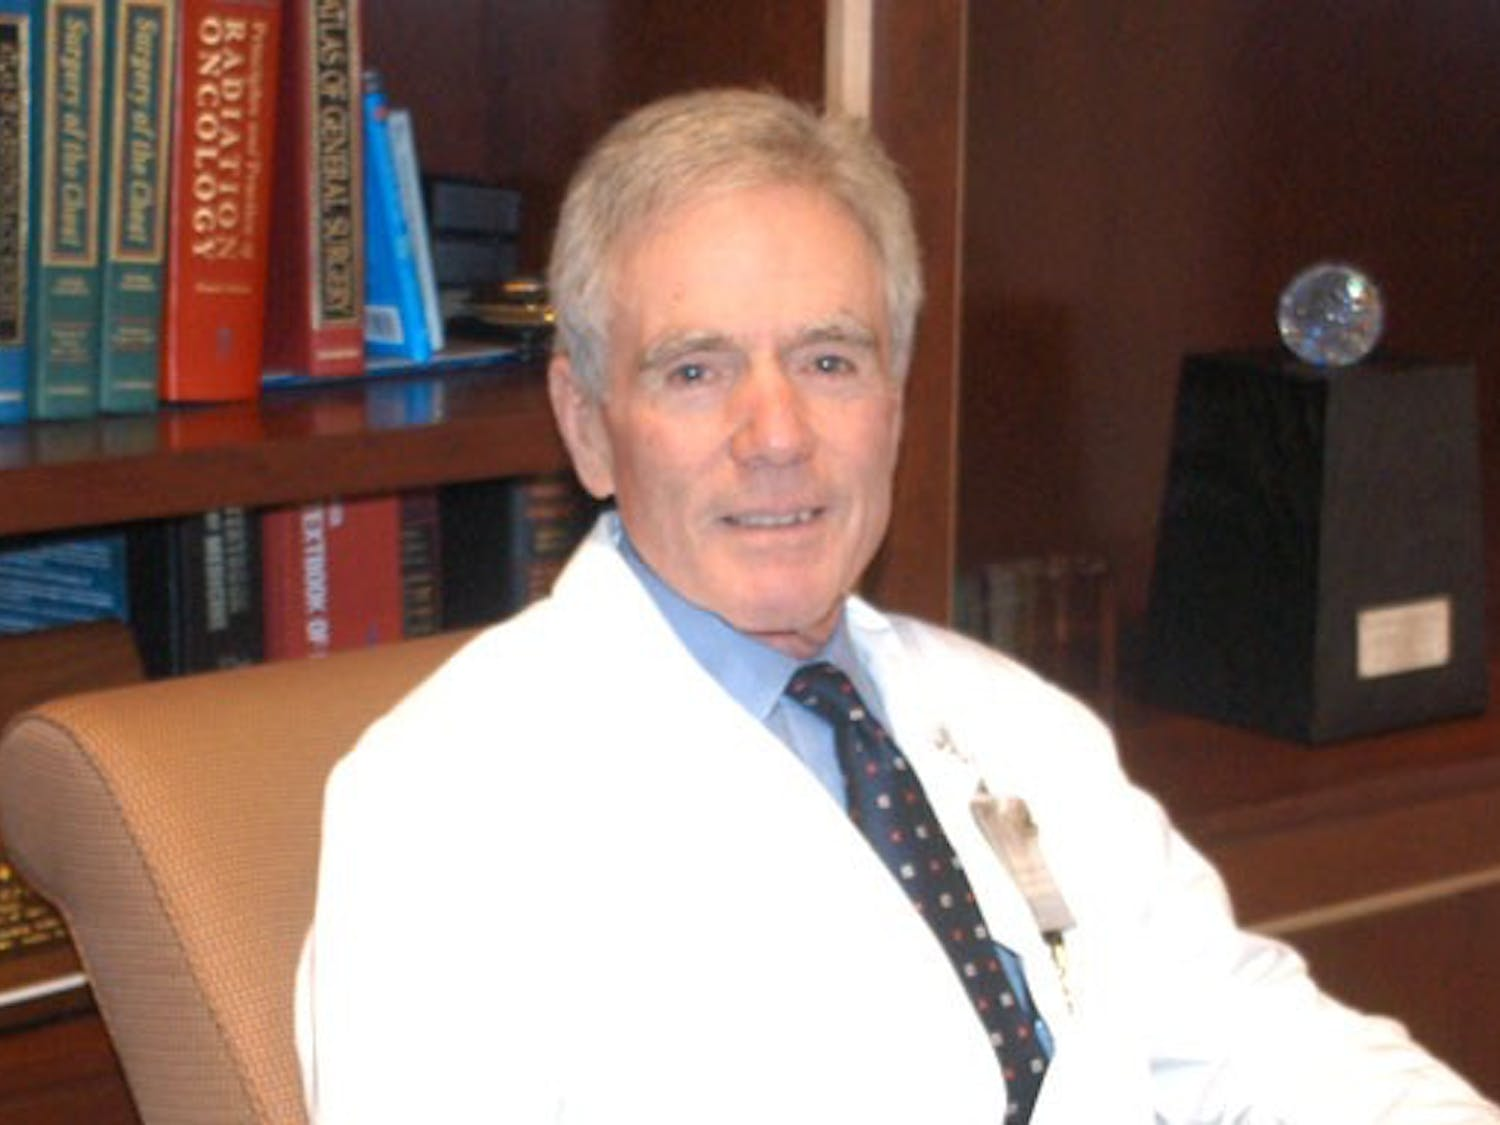 """DUHS Chancellor Emeritus Dr. Ralph Snyderman recently wrote an op-ed for The Huffington Post titled """"Making Sense of Health Care Reform."""""""